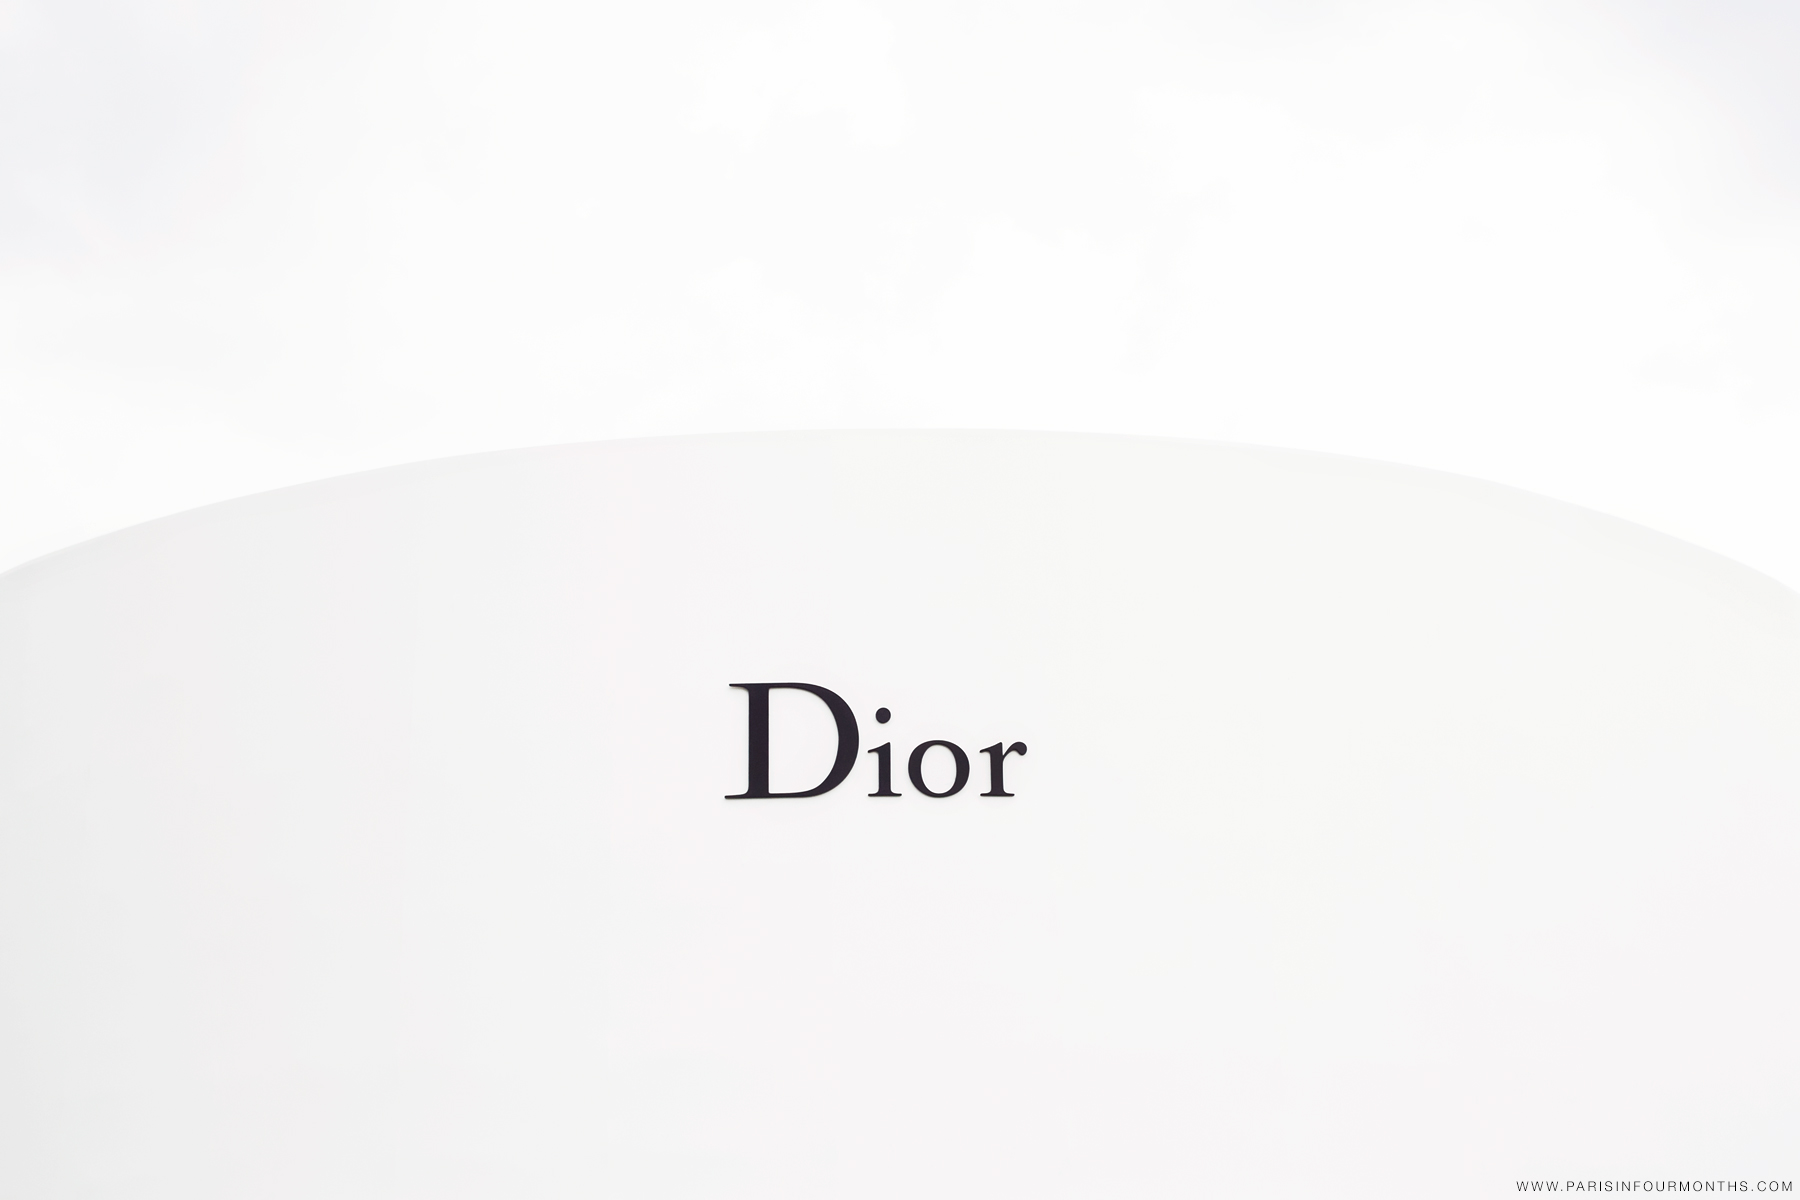 Dior Haute Couture by Carin Olsson (Paris in Four Months)